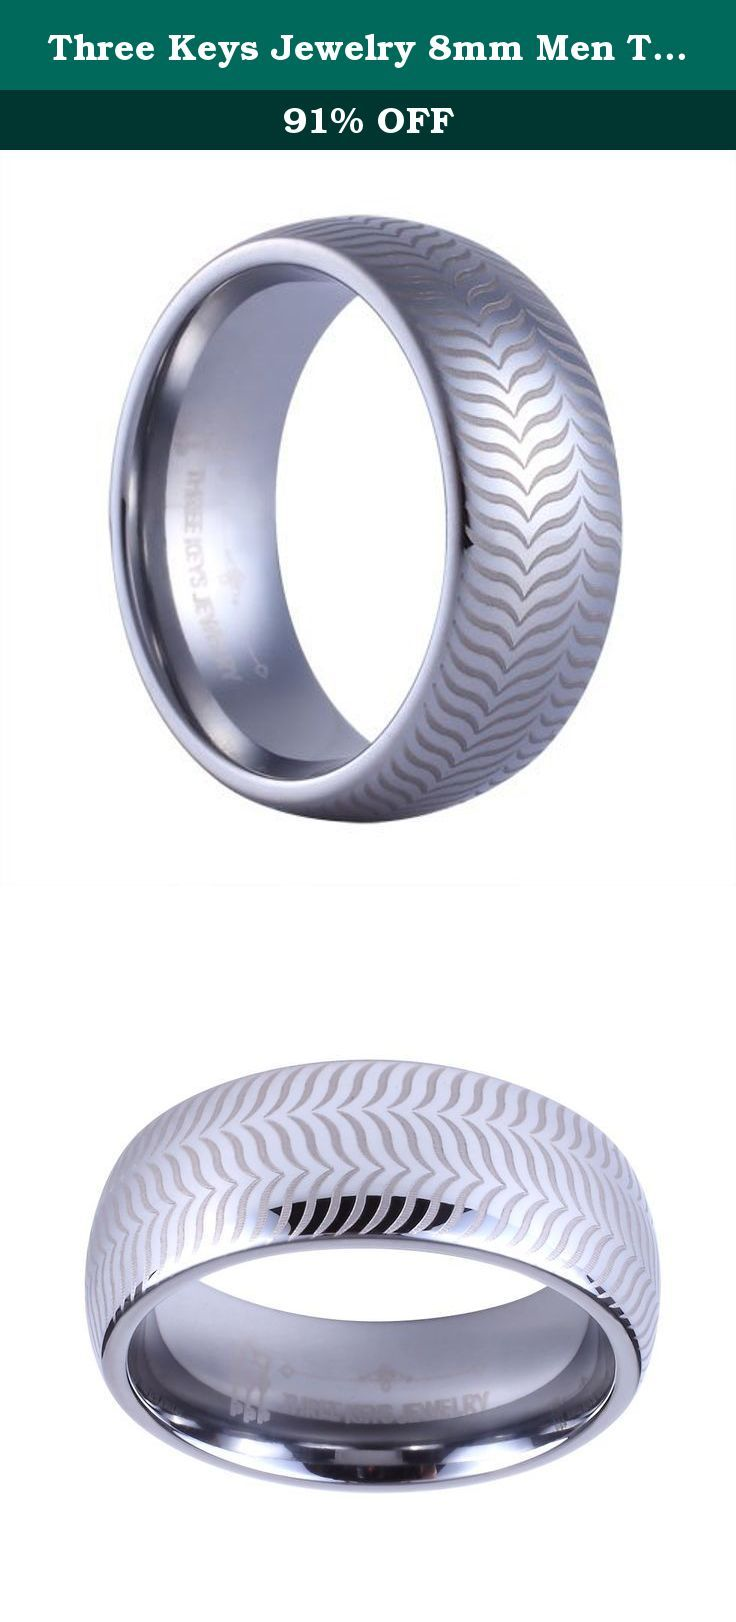 Three Keys Jewelry 8mm Men Tungsten Carbide Ring Wedding Engagement Band Silver Dome Matte Frost Polish Laser Car Tire Size 10. Why choose Three Keys Jewelry store to purchase? NO.1: Amazon Authentication Brand;(Guaranteed Quality ) NO.2: True & Pure Tungsten Material;(Scratch Proof & Hypoallergenic & Never Fade) NO.3: Comfortable & Exquisite & Amazon Unique Design;(High Polish & Comfort Fit) NO.4: Free & Lovely and Valued Gift Box; NO.5: Amazon Excellent and Fast Delivery;(Next,Second…